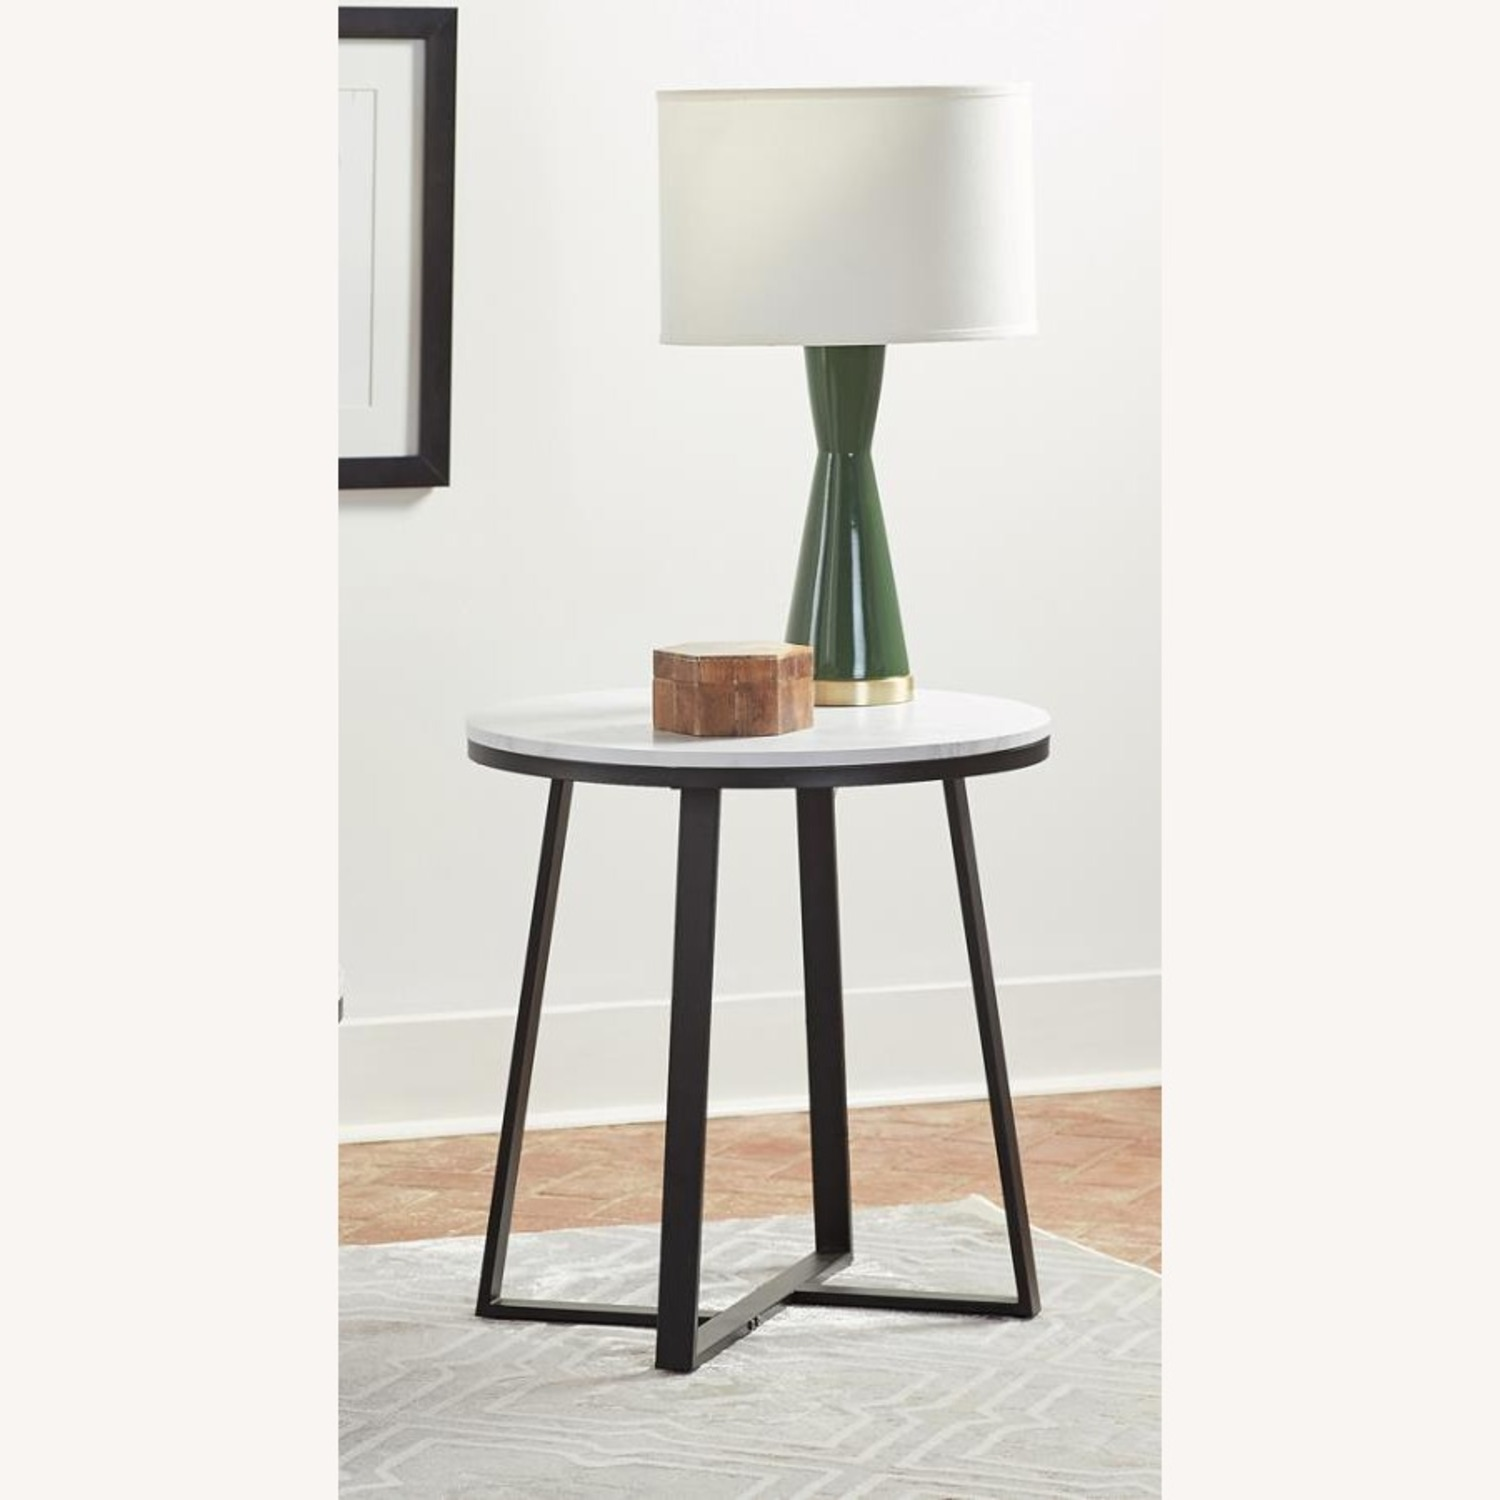 End Table In Faux Marble Top & Matte Black Finish - image-1